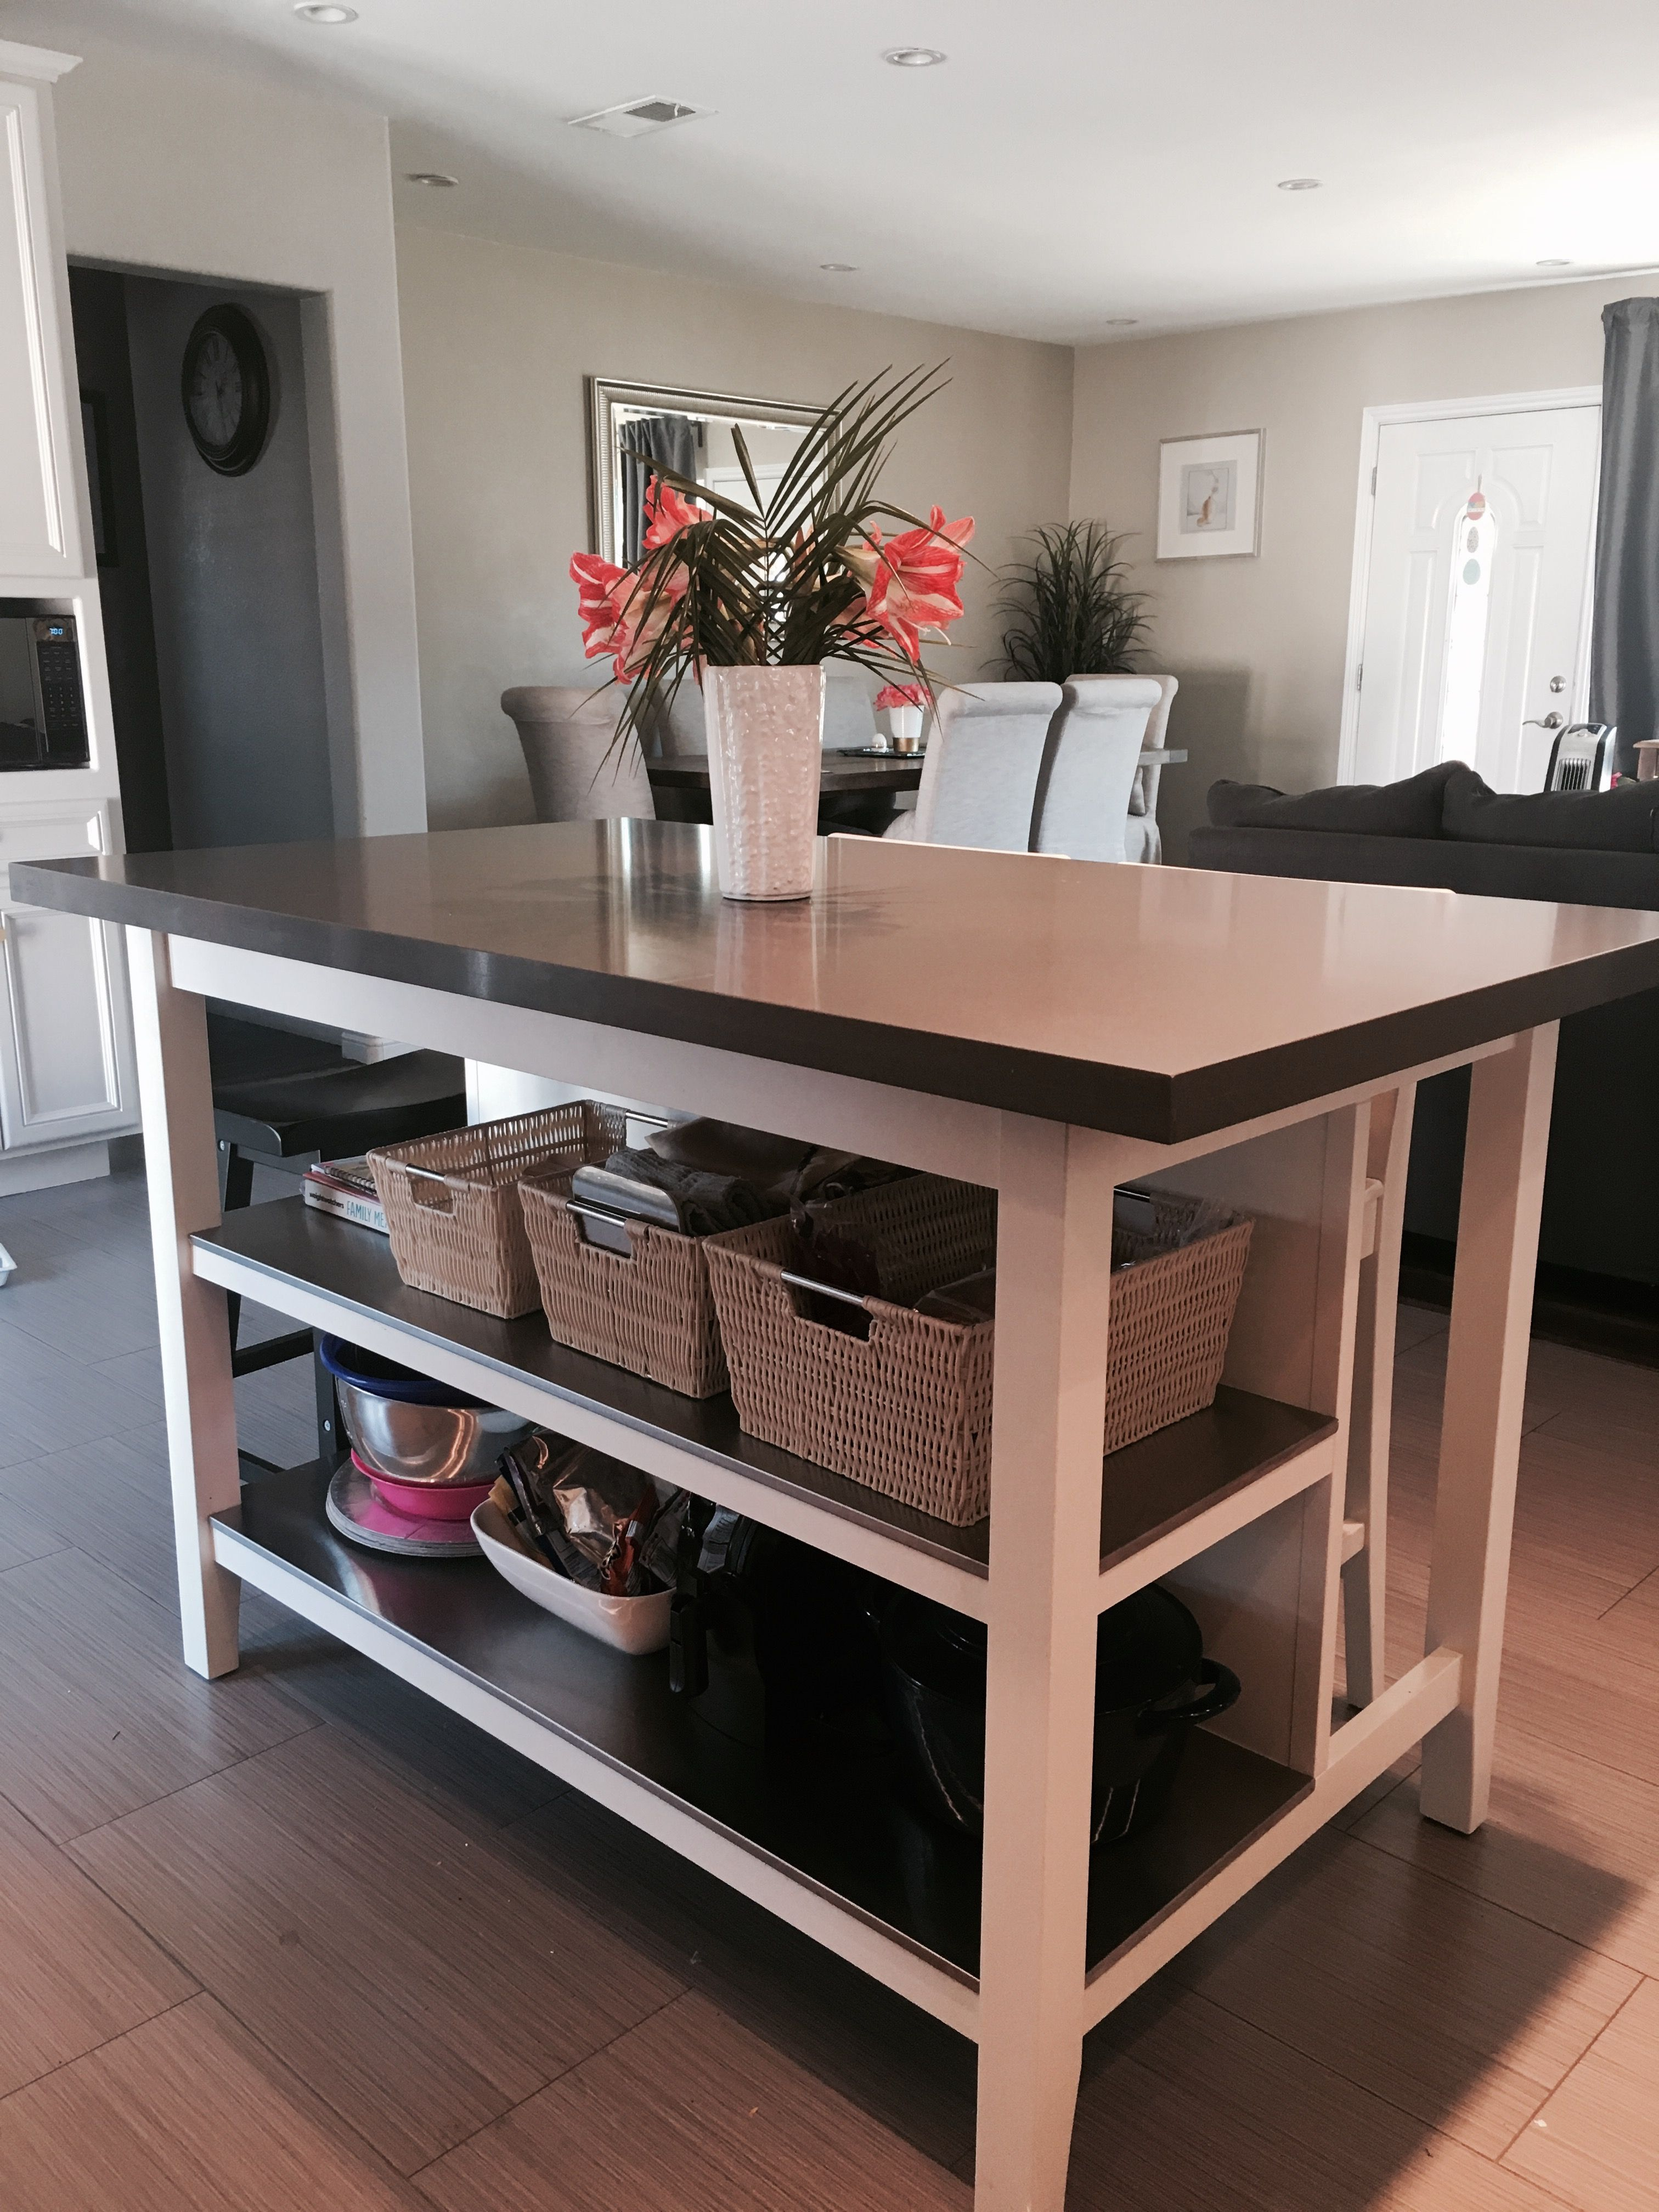 Ikea Stenstorp Kitchen Island Hack. We loved this island but ...